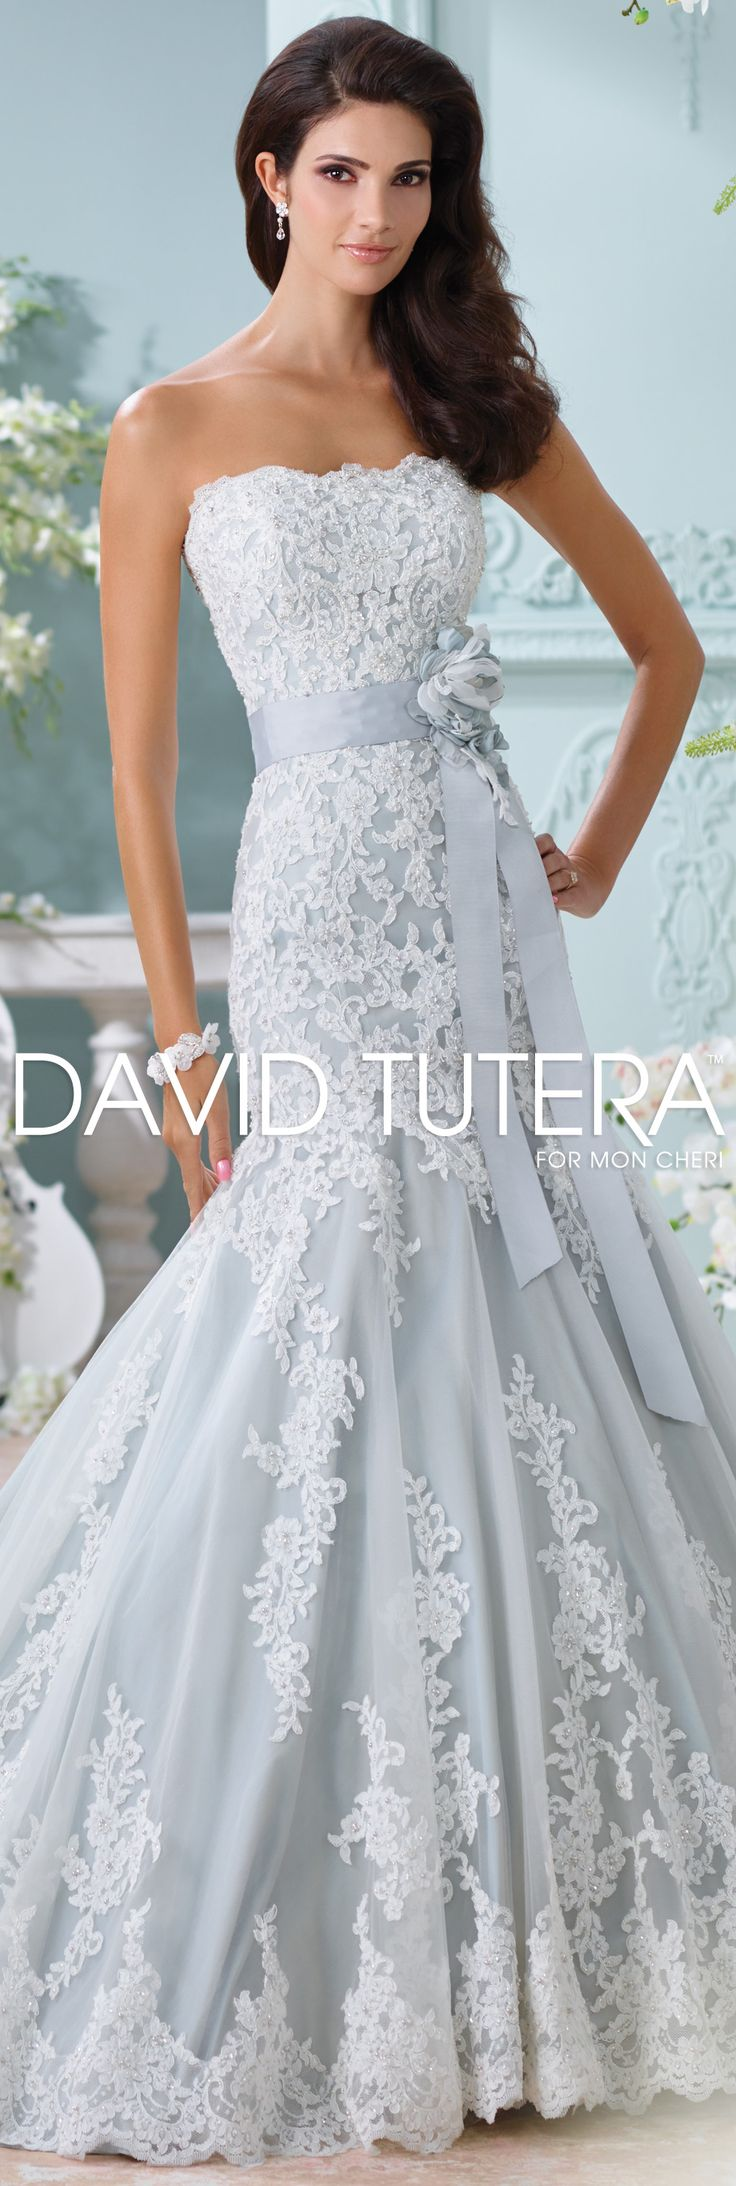 1764 best Ultimate Wedding Dresses images on Pinterest | Bridal ...